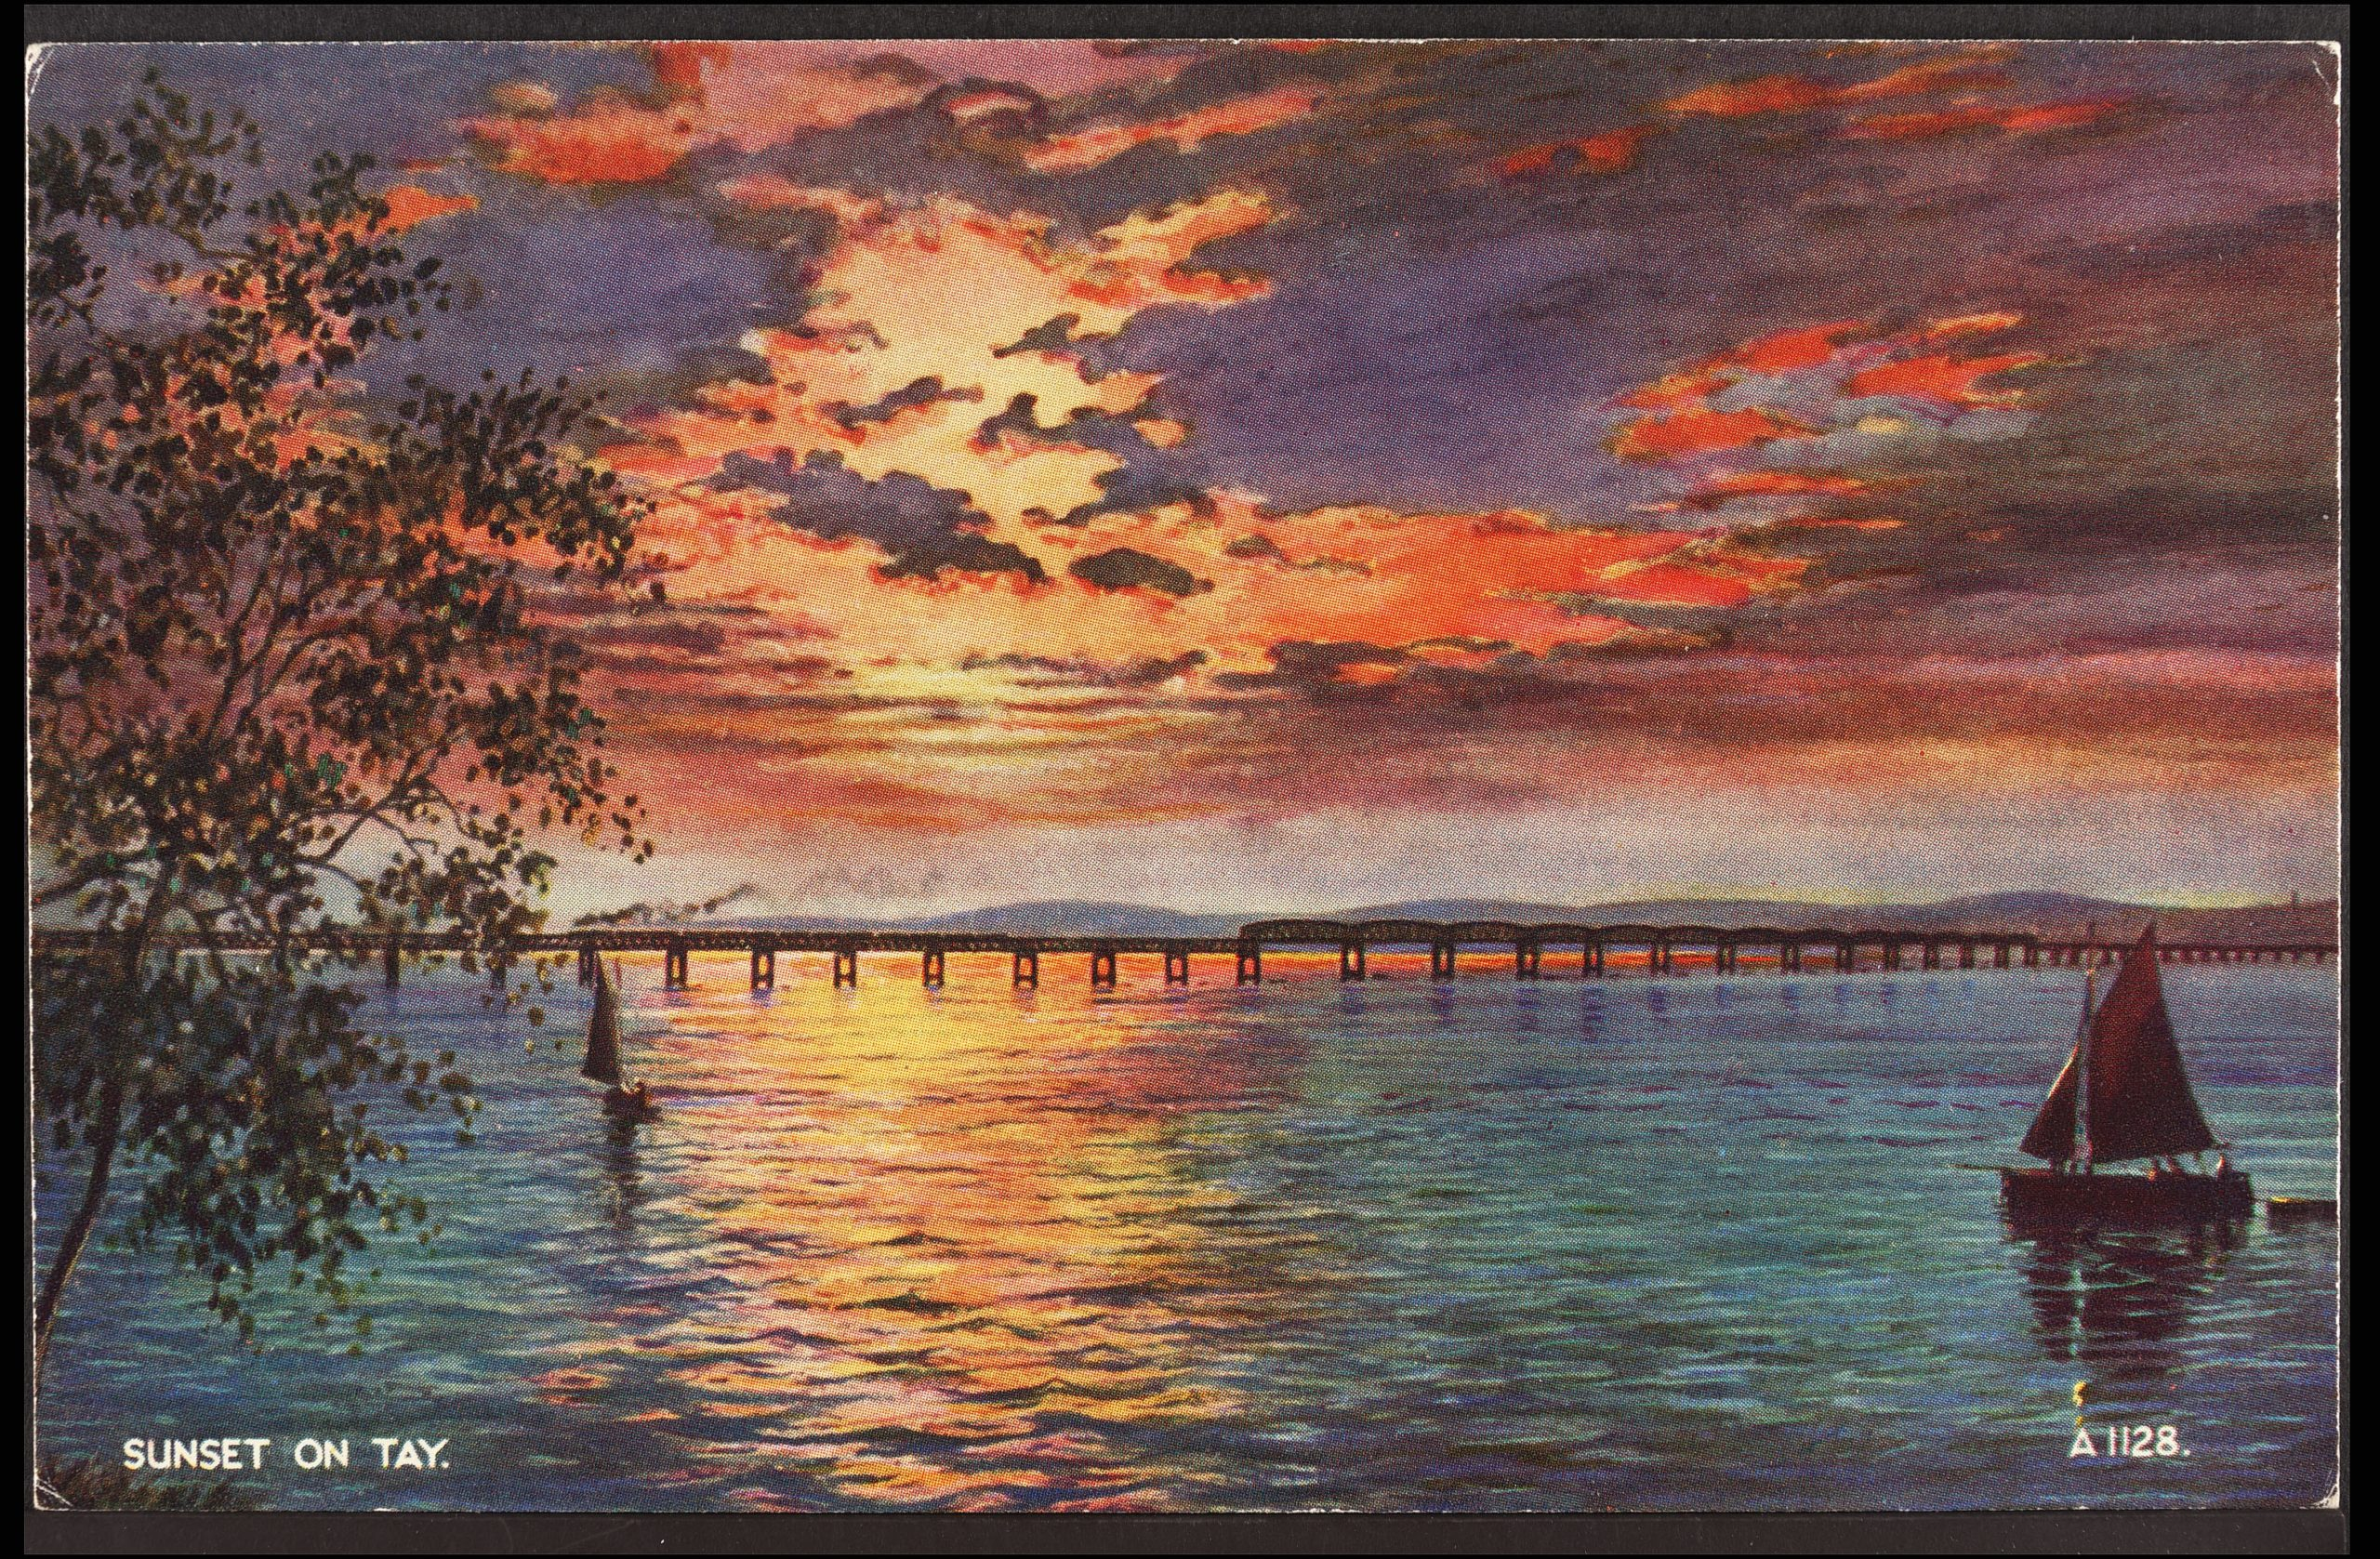 Sunset on the Tay, Dundee, 1940, Courtesy of the University of St Andrews Library: JV-Art-1128